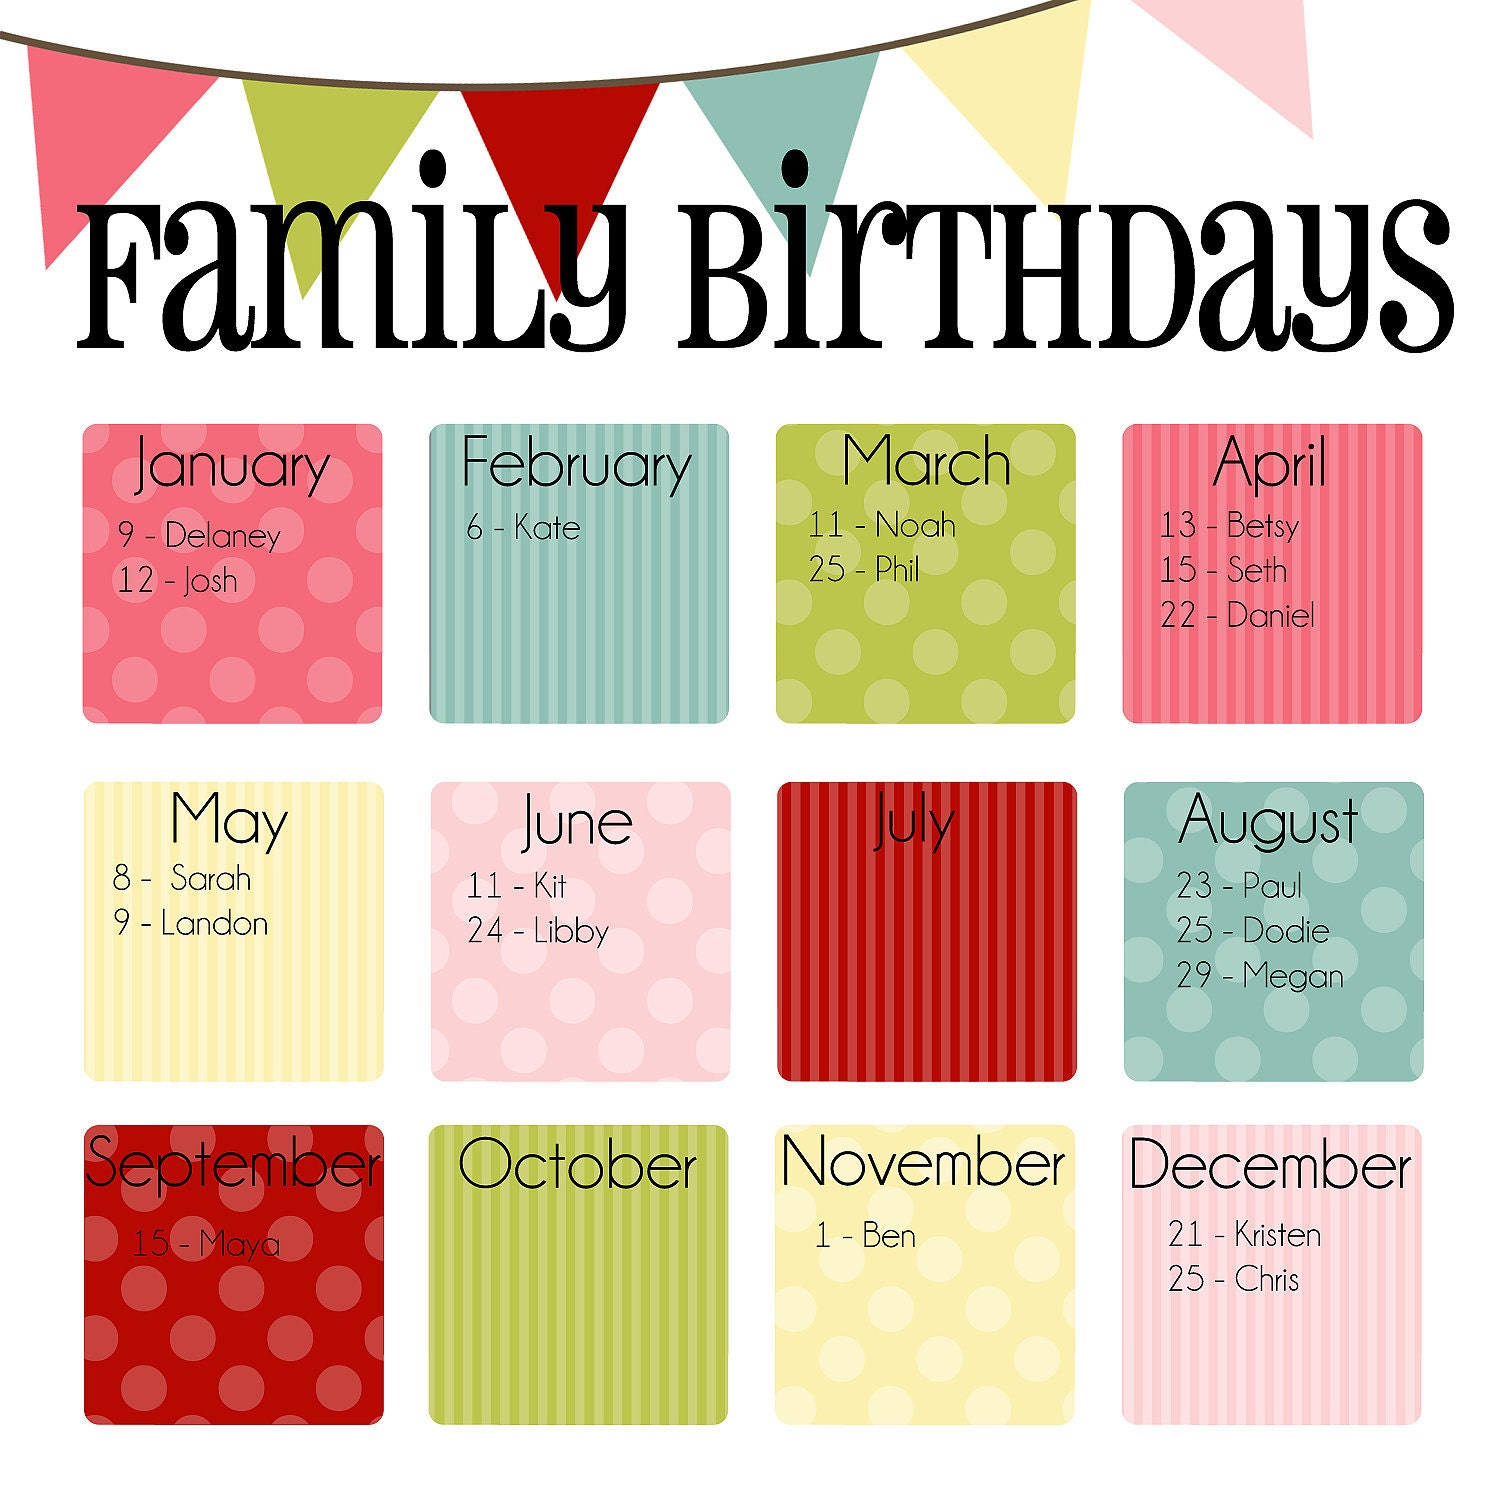 Birthday Calendars : Items similar to family birthday calendar digital copy